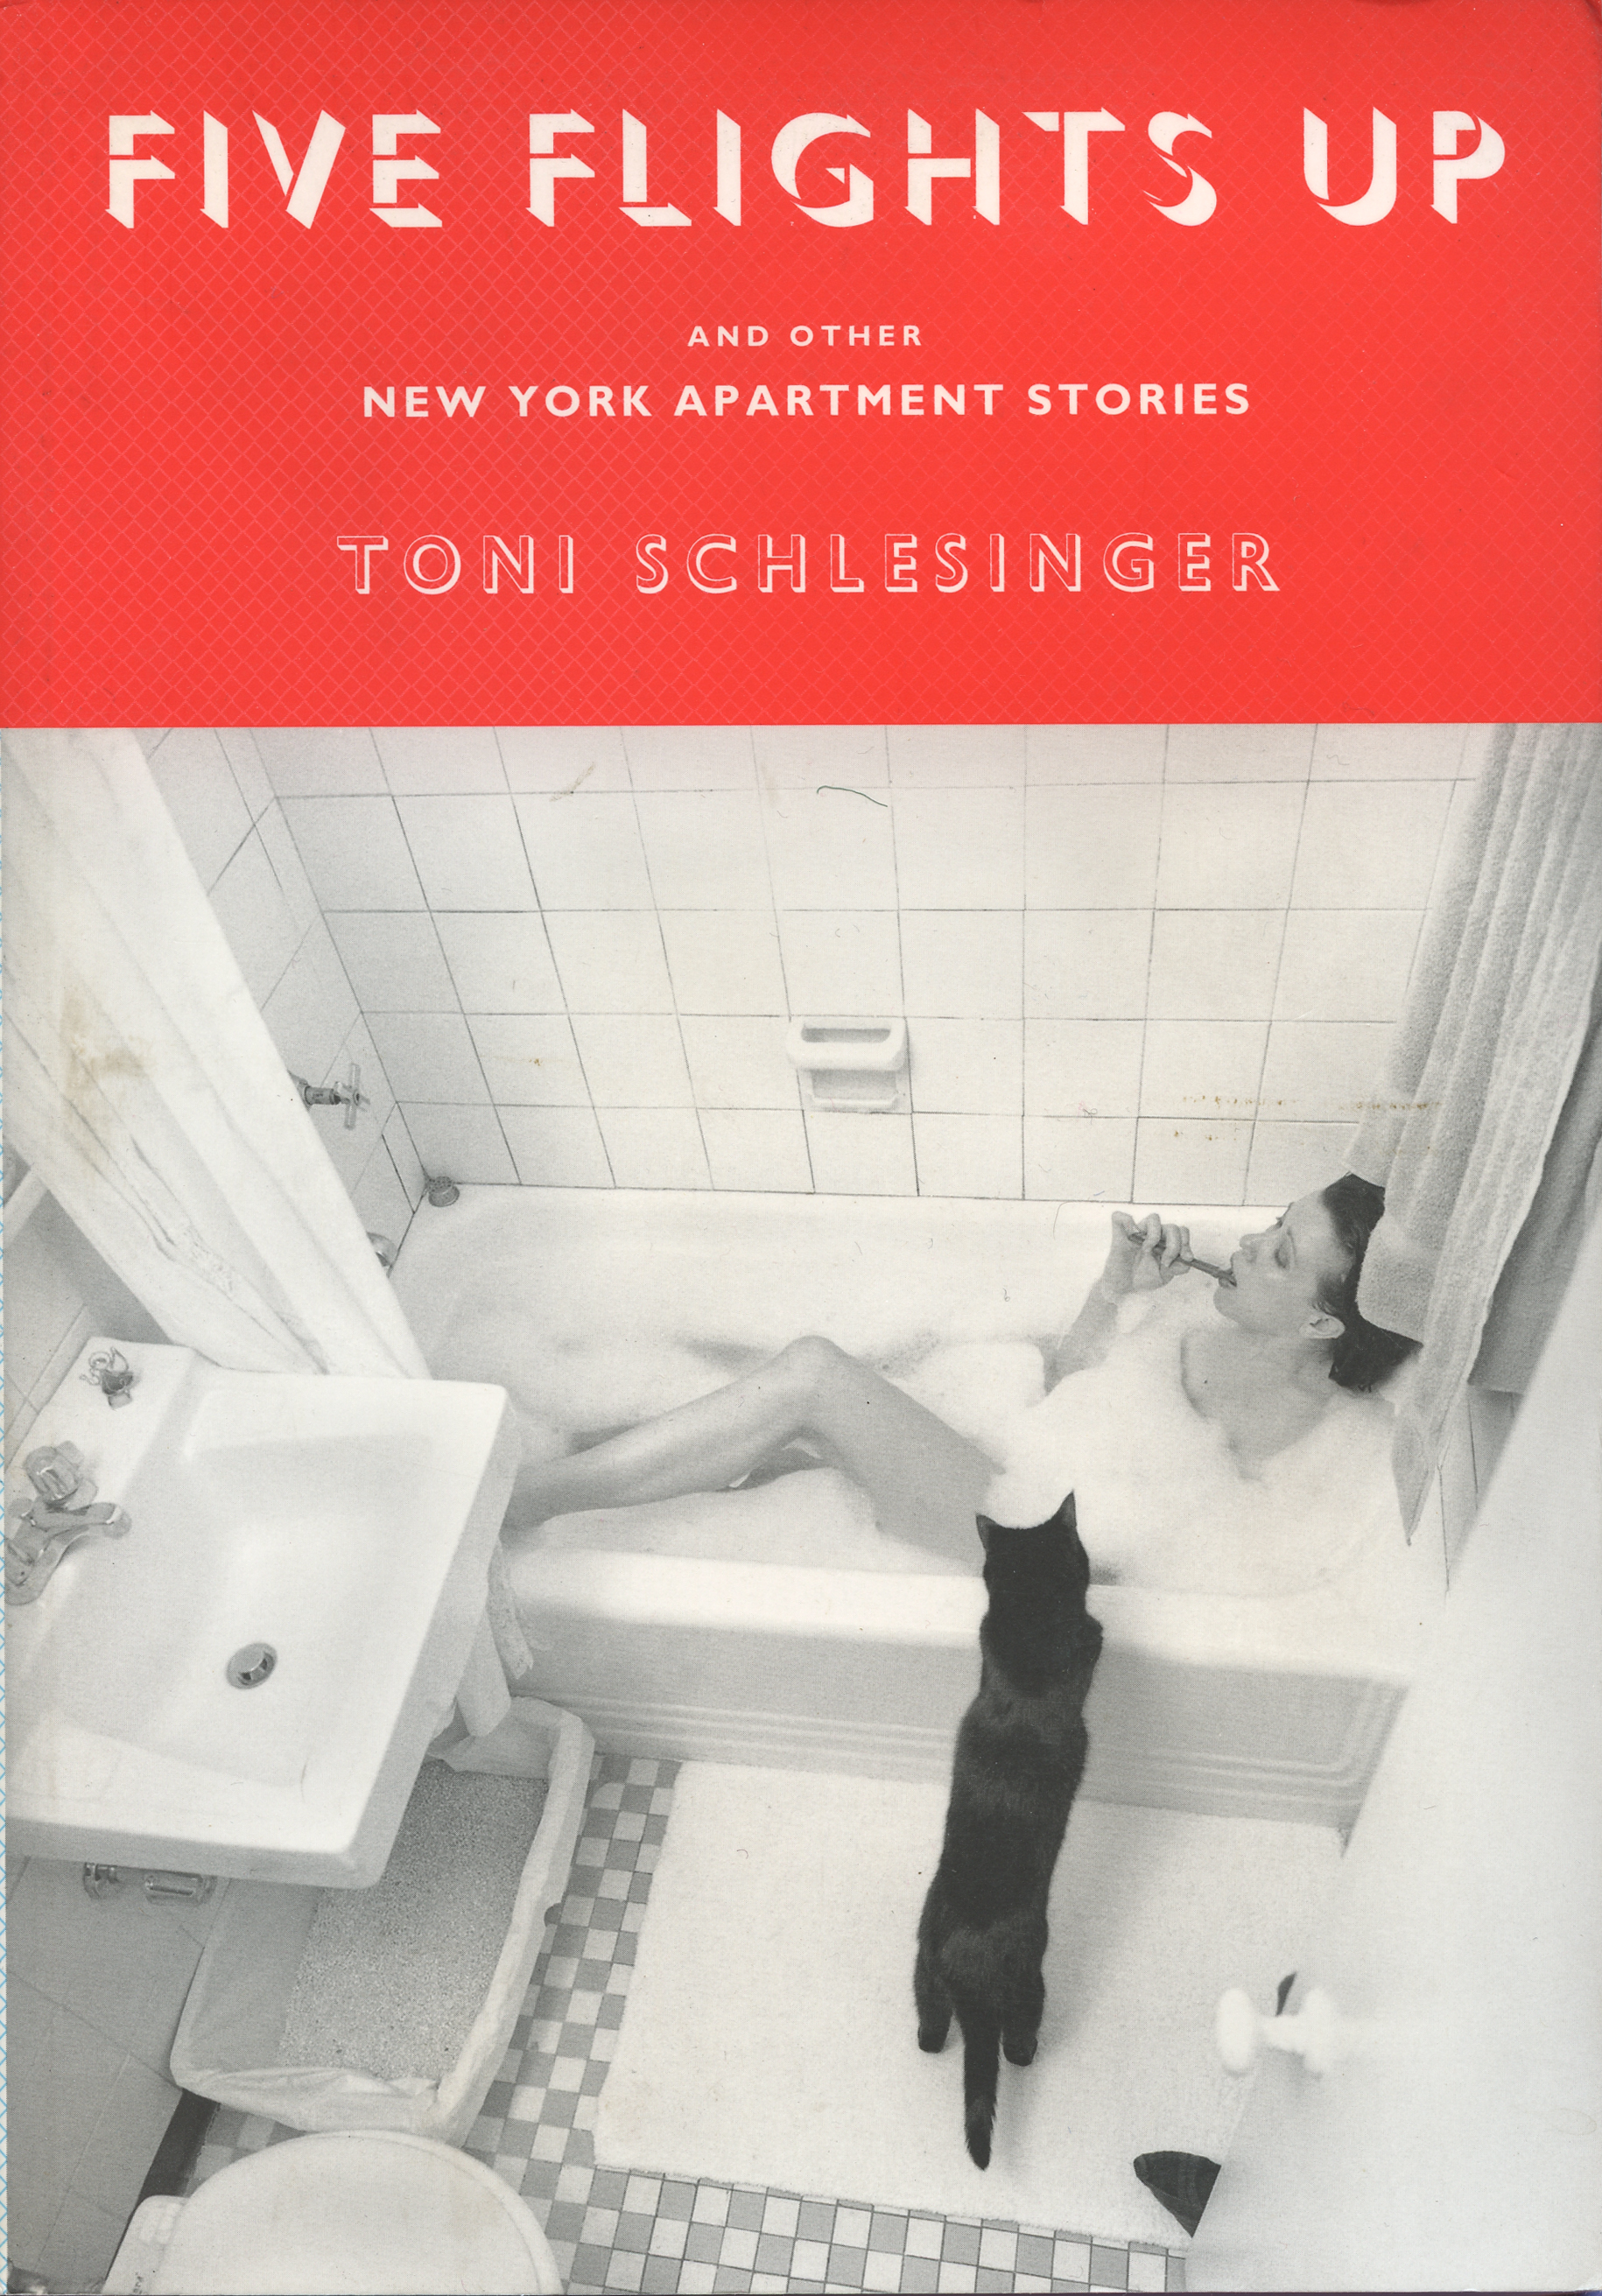 Five Flights Up and Other New York Apartment Stories - by Toni Schlesinger